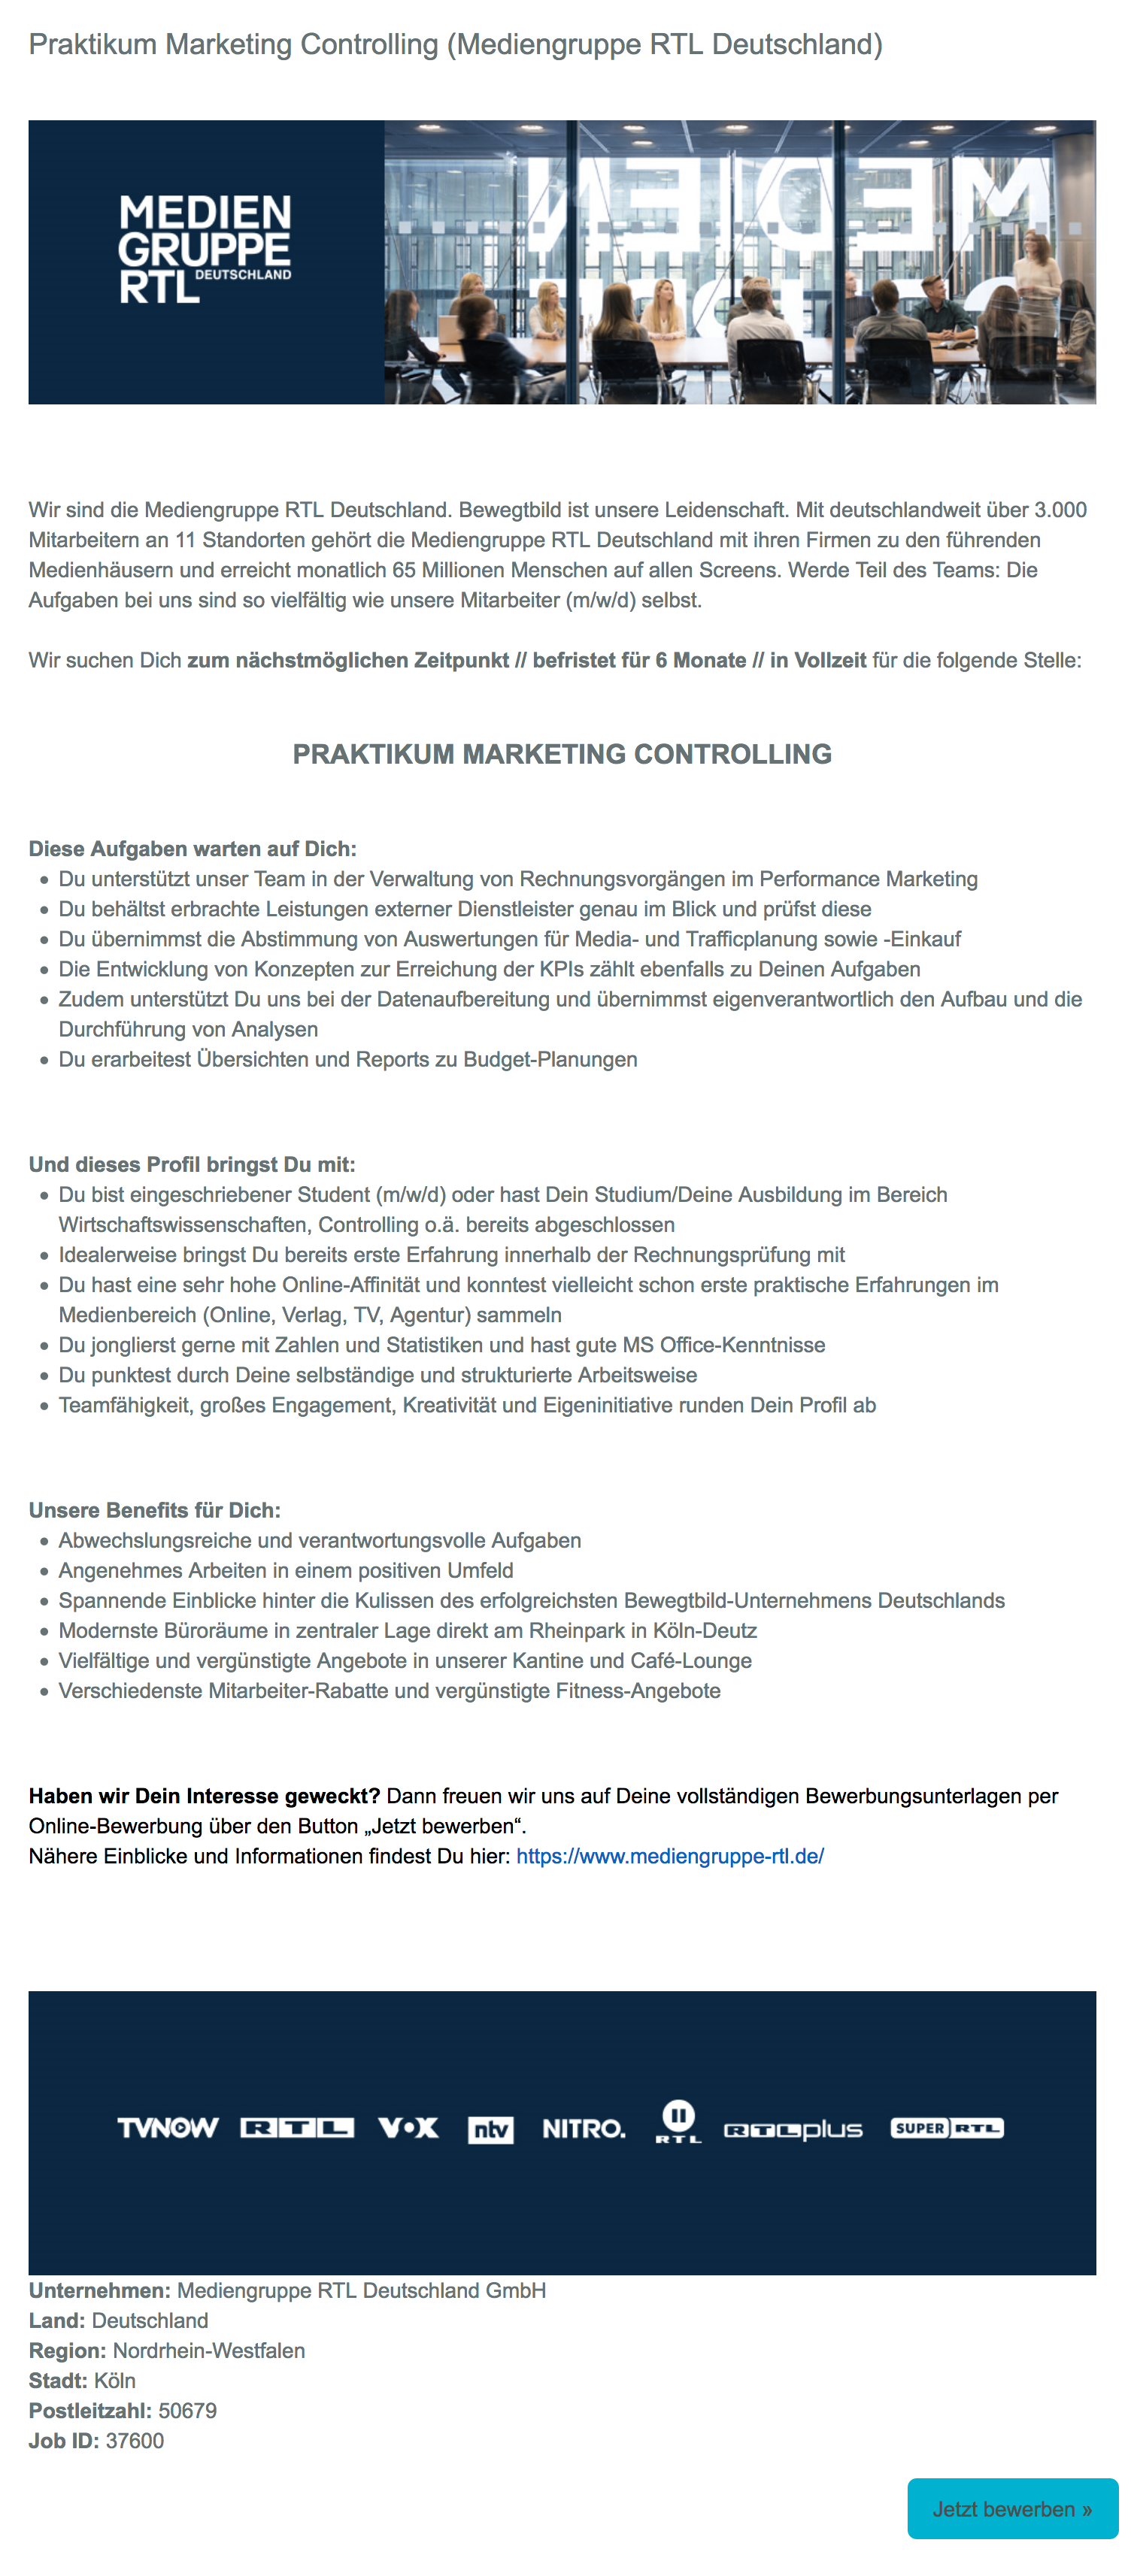 Praktikum Marketing Controlling